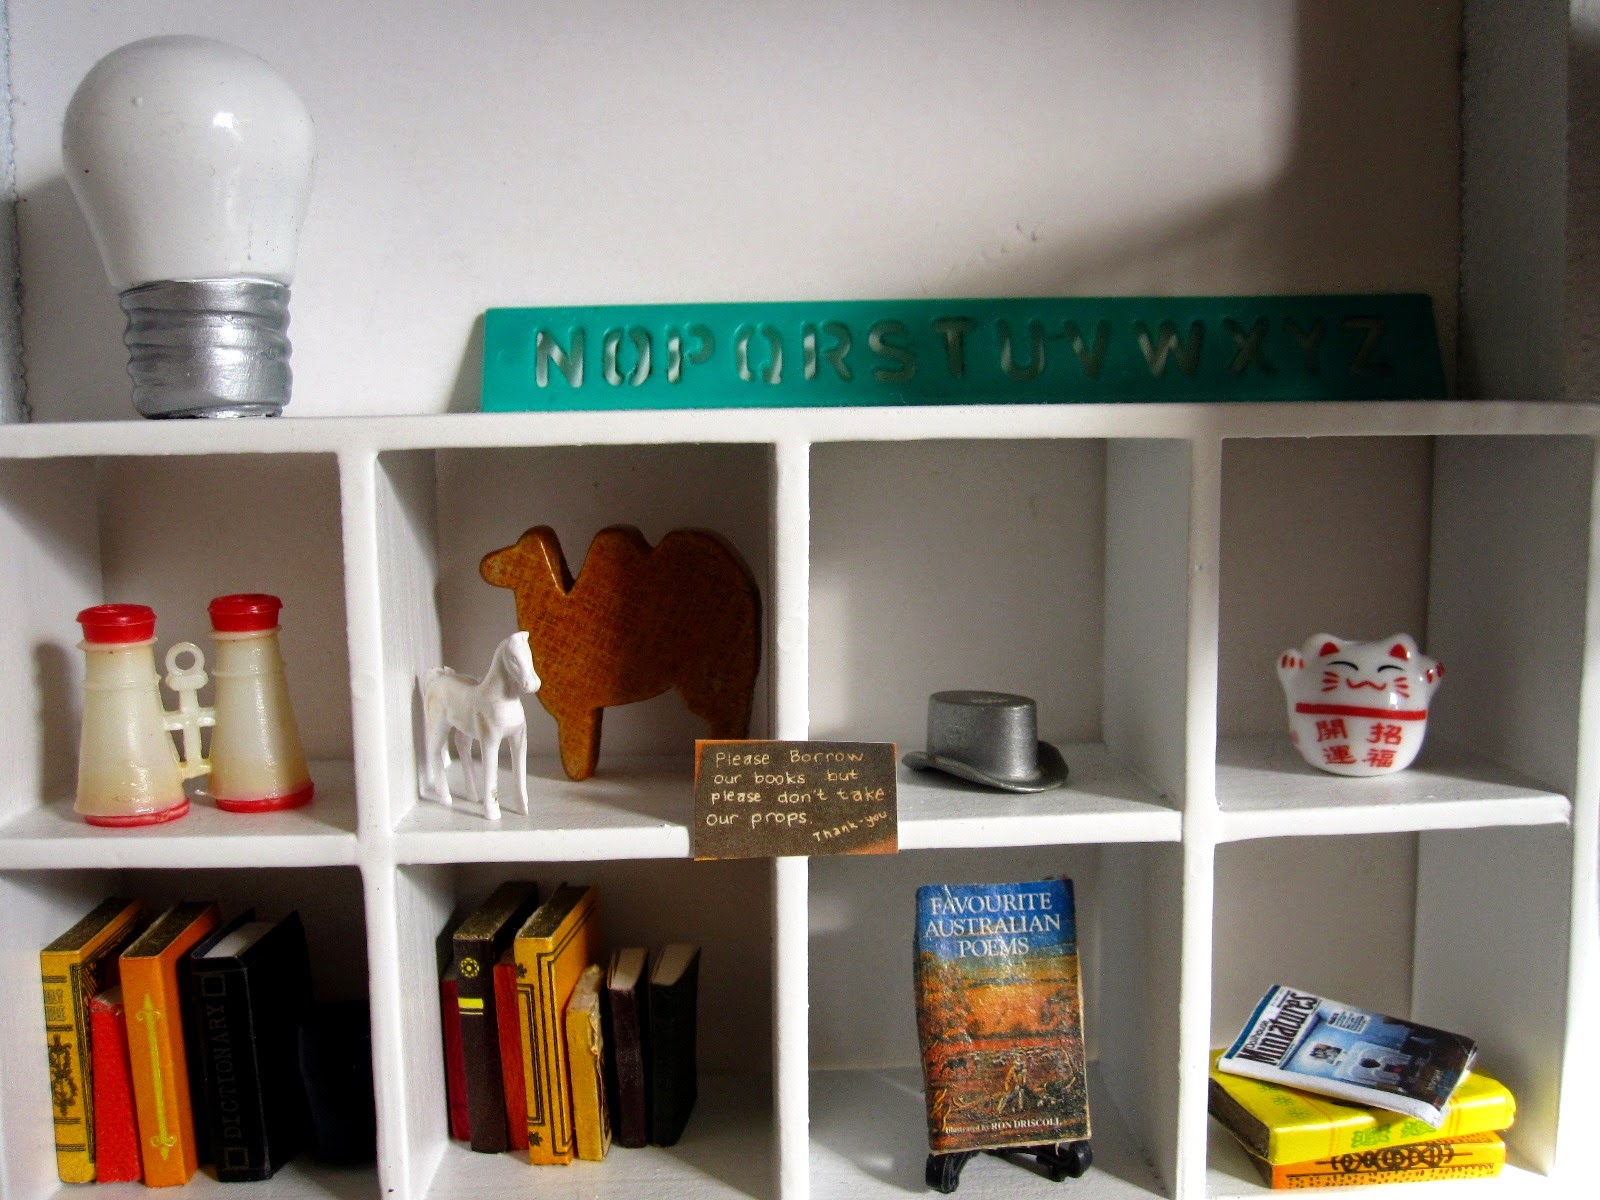 Decor items on a bookcase in a modern dolls' house miniature pop-up Little Library,